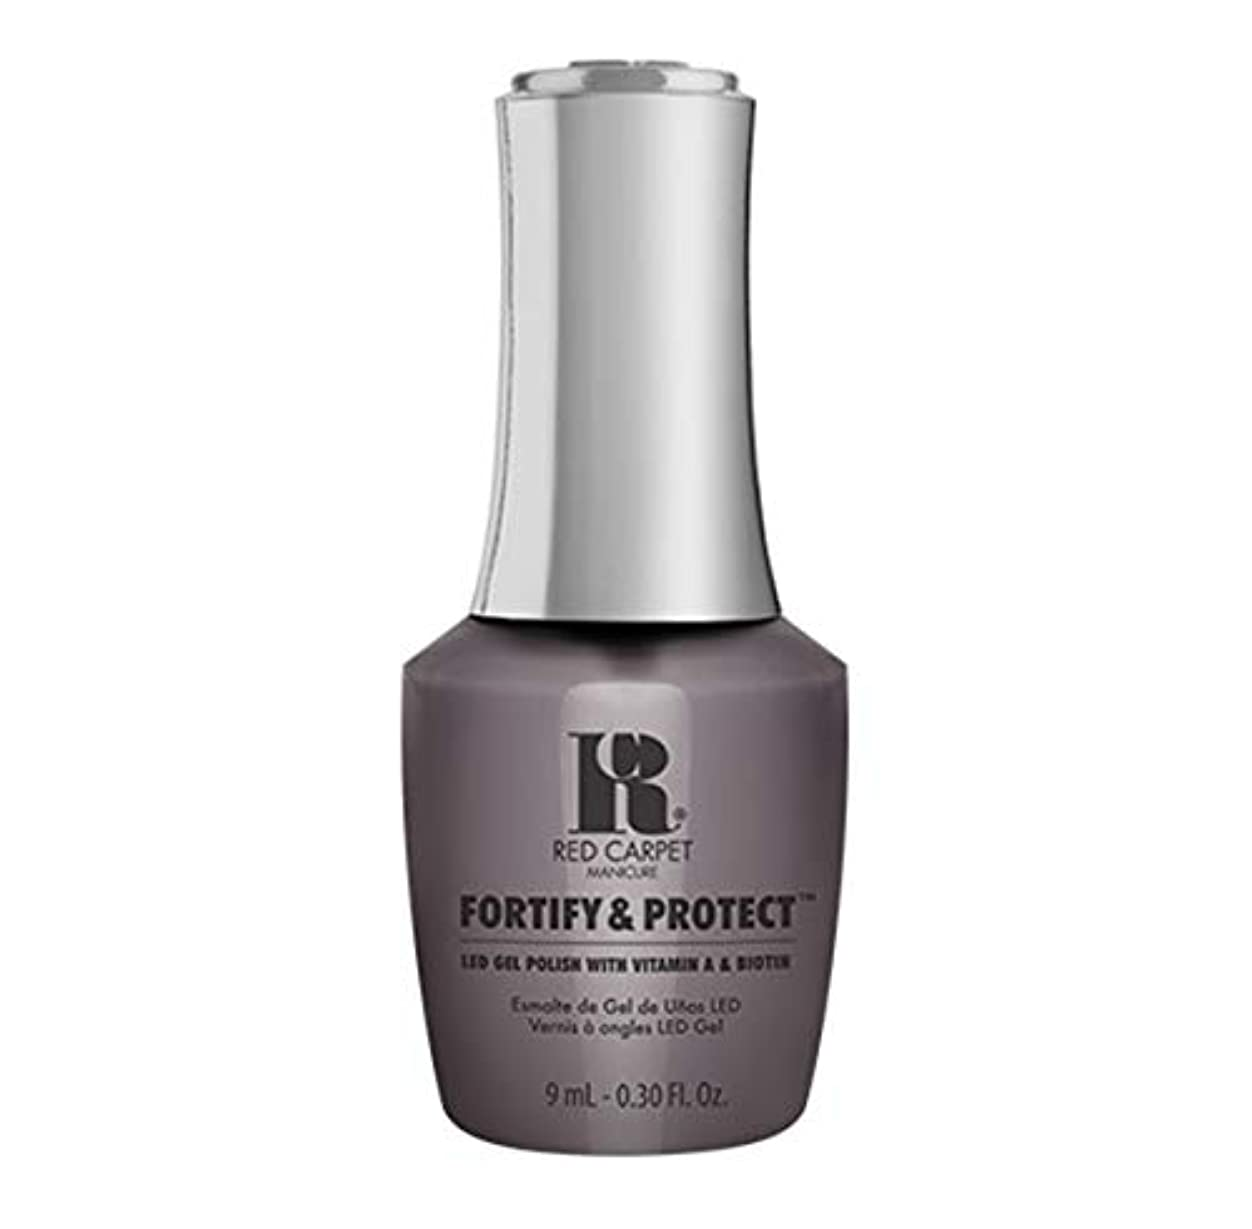 解凍する、雪解け、霜解け矩形決してRed Carpet Manicure - Fortify & Protect - Getting My Screen Time - 9ml / 0.30oz